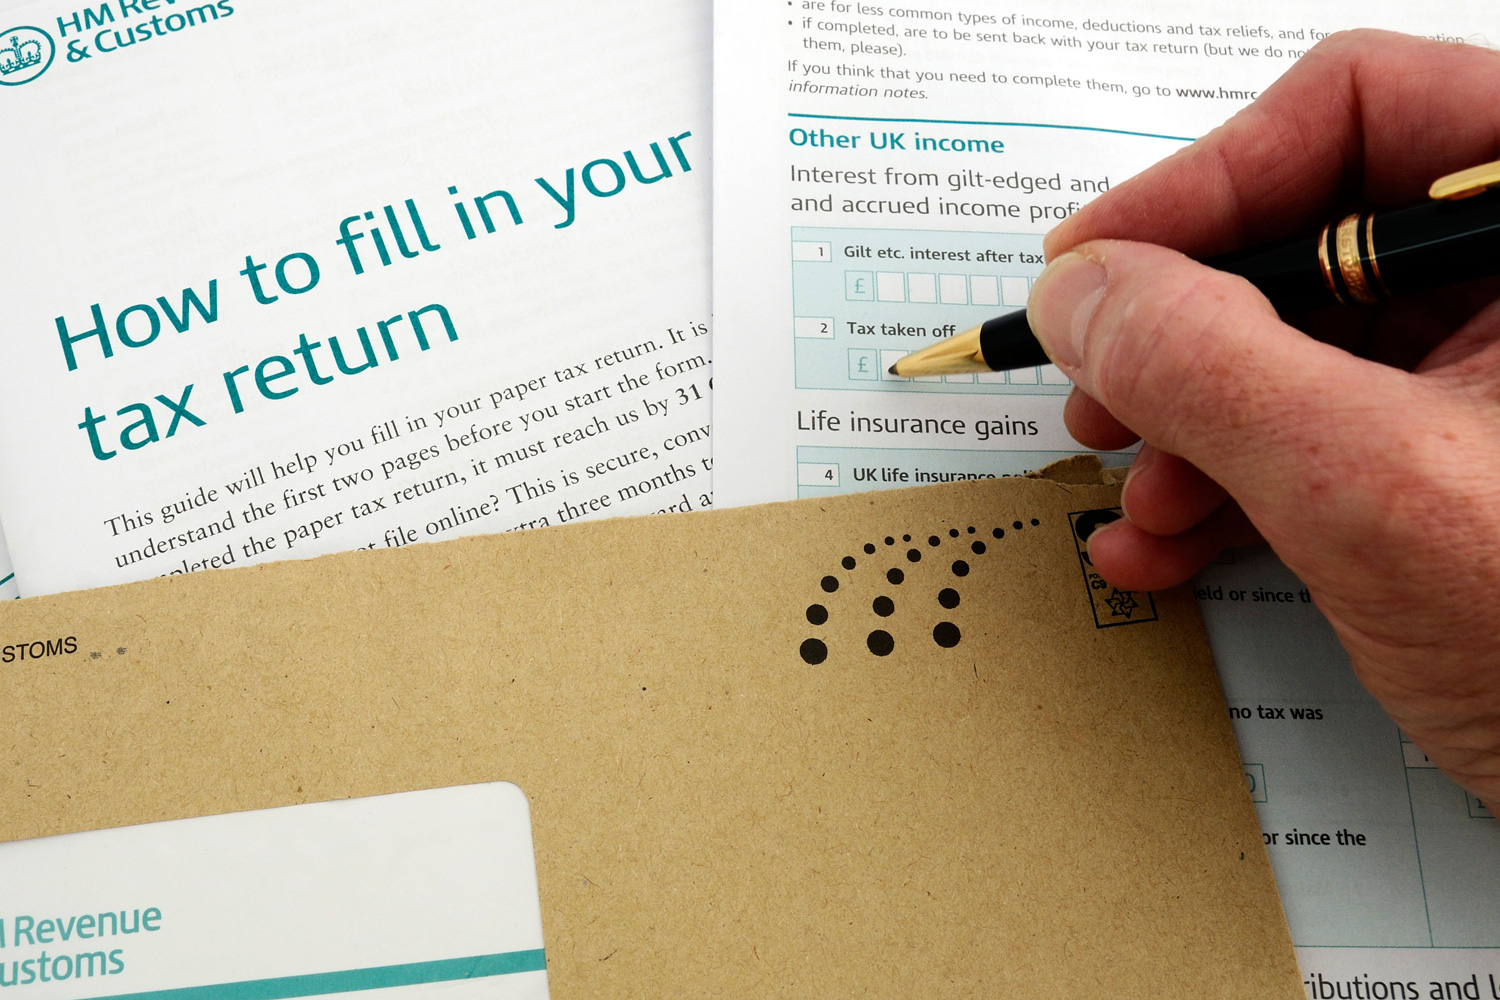 Here's what to do if you are going to miss the tax return deadline